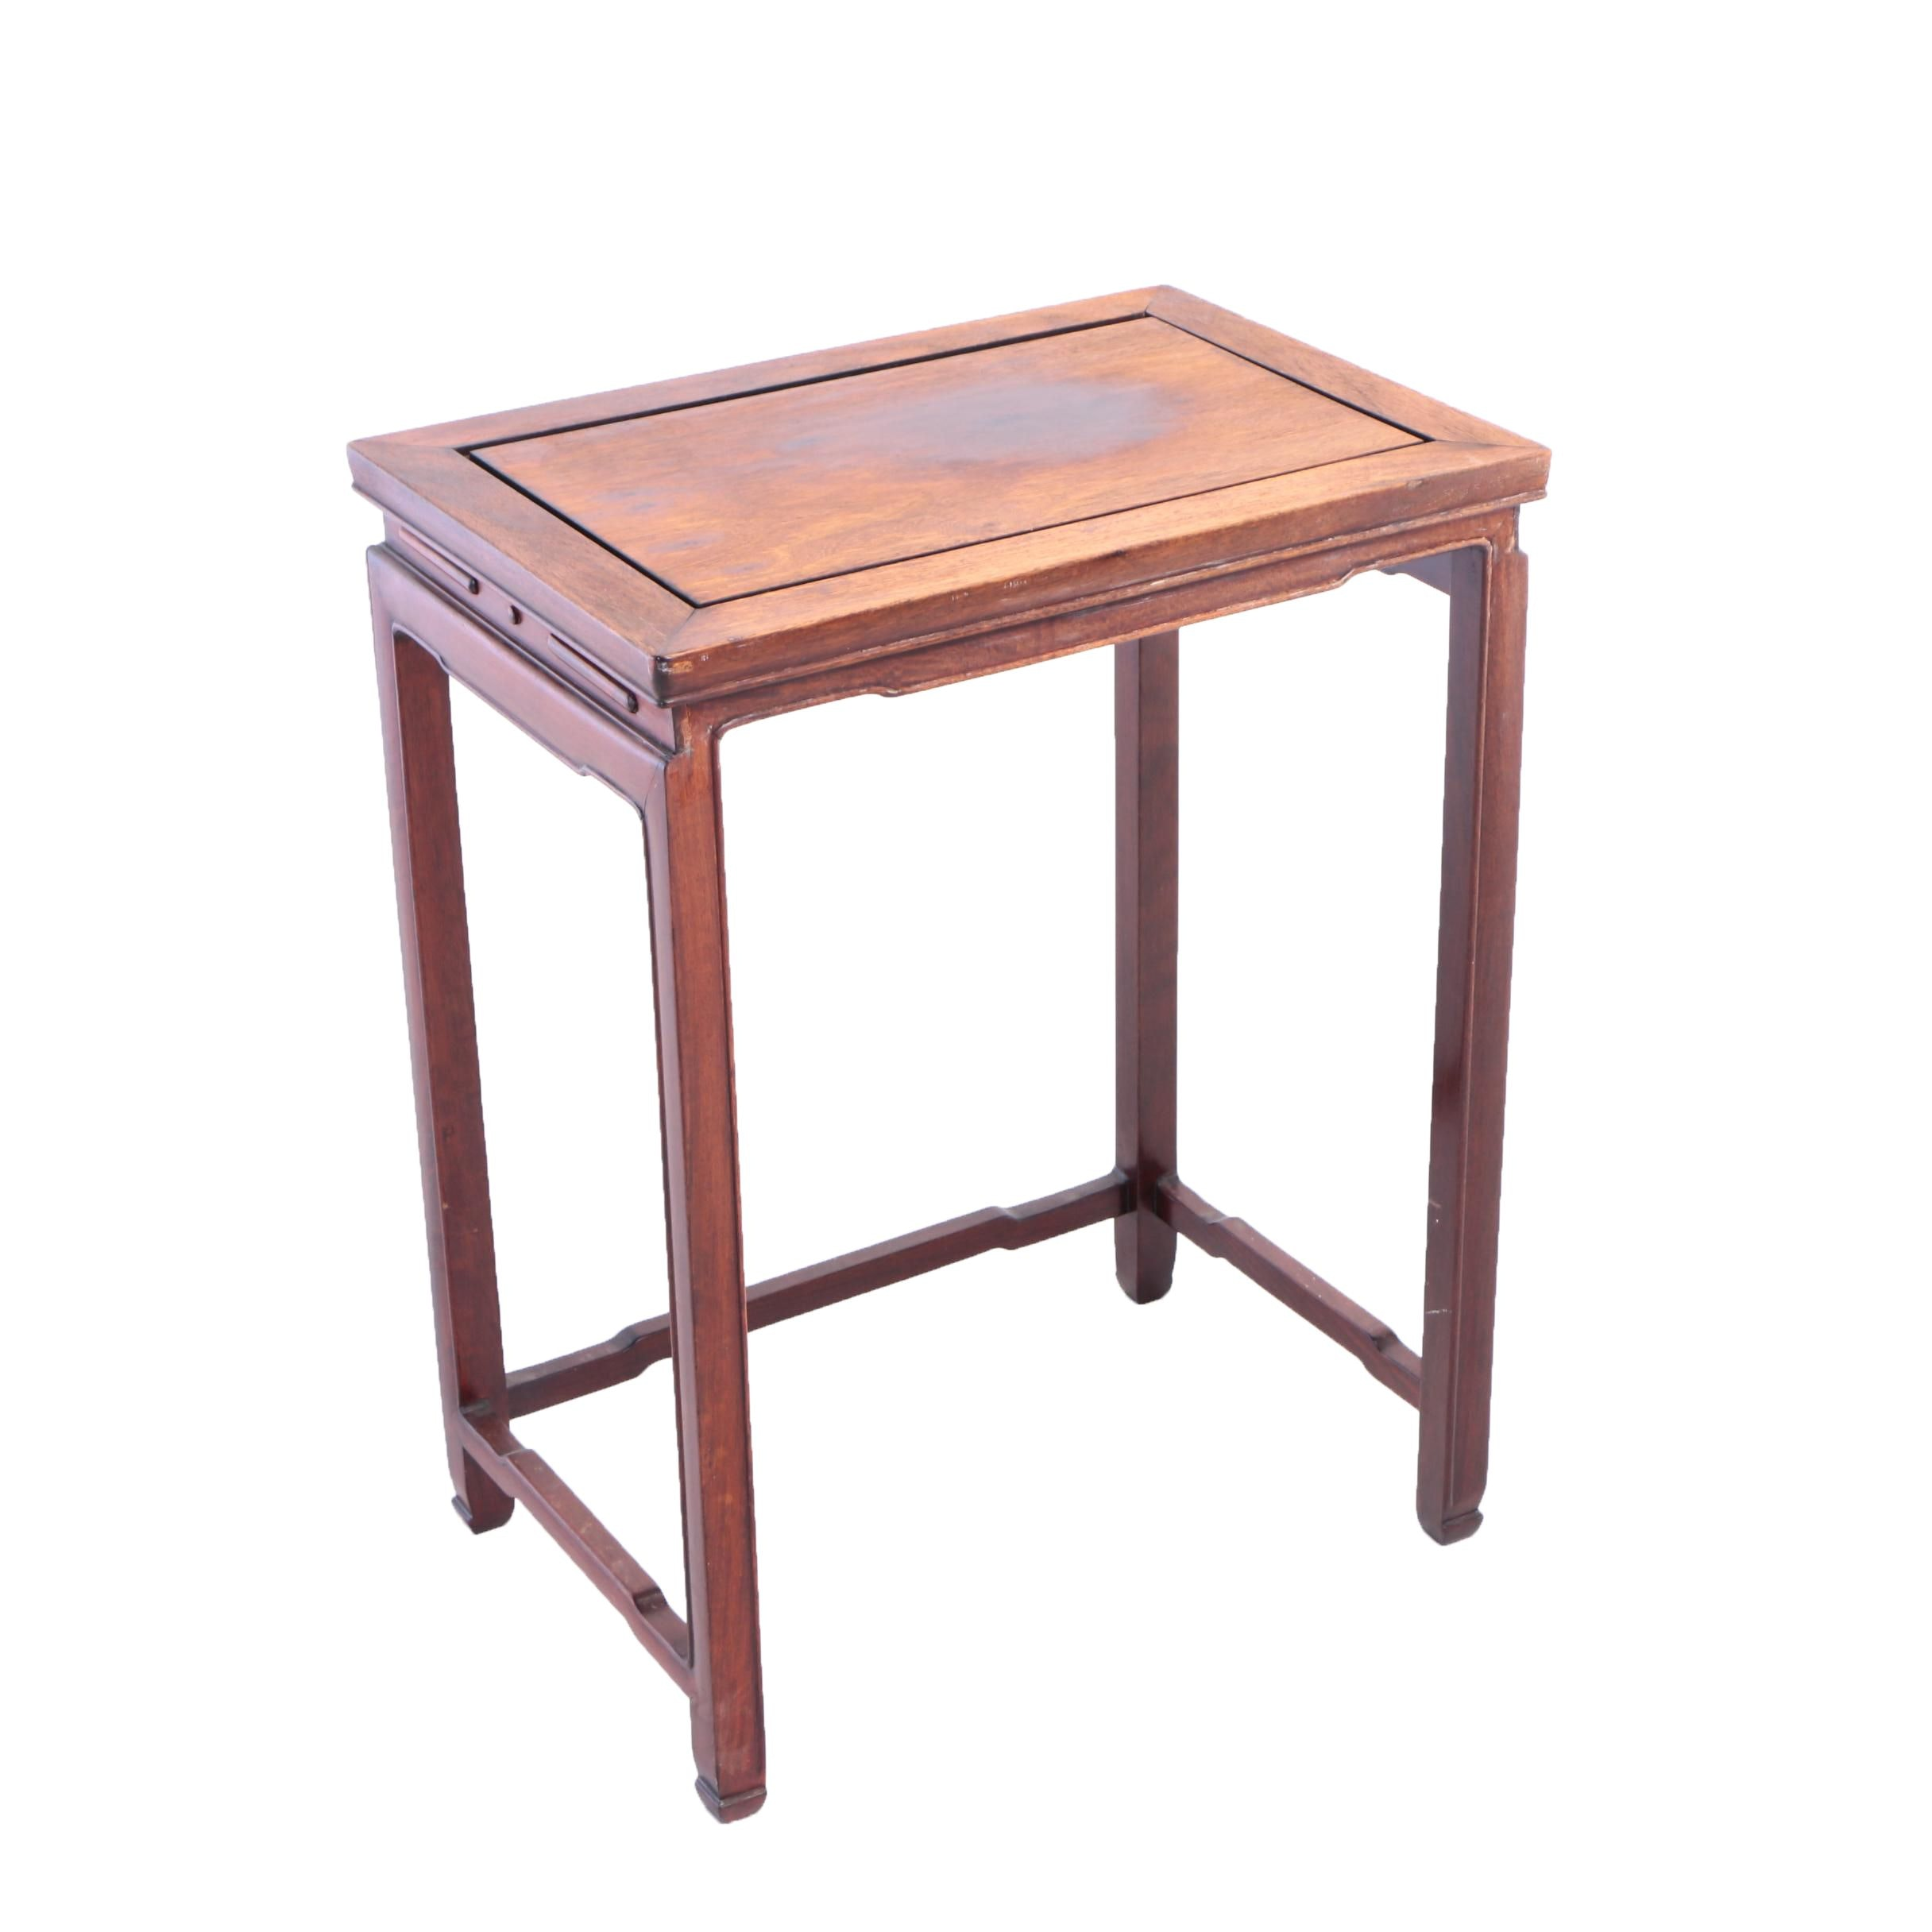 Chinese Stained Hardwood Side Table, 20th Century